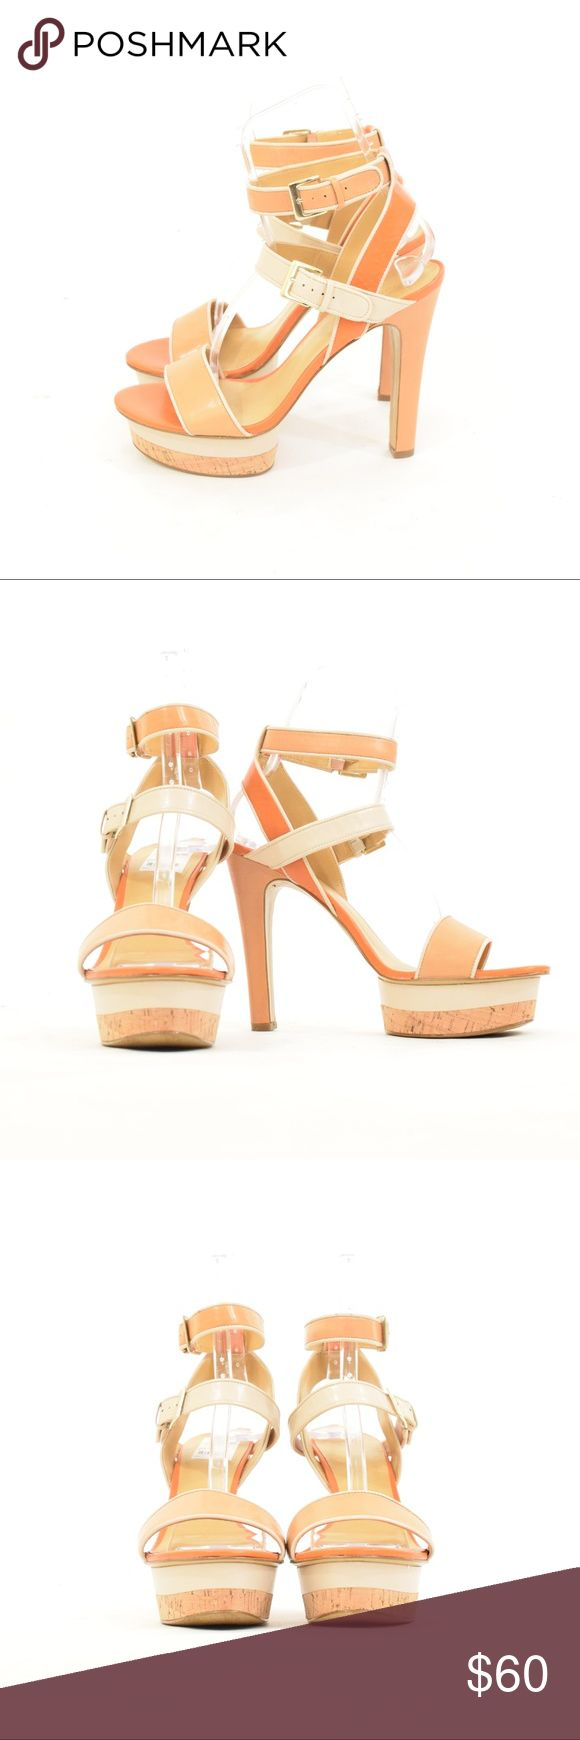 NWT Nine West Cork Platform Ankle Strap Heels Perfect spring/summer pumps from Nine West. These are brand new with tags - but no box. Soft beige leather with white piping and a light orange bottom and strap. Cork platform at the bottom. Ankle-straps. Size 11. Nine West Shoes Heels